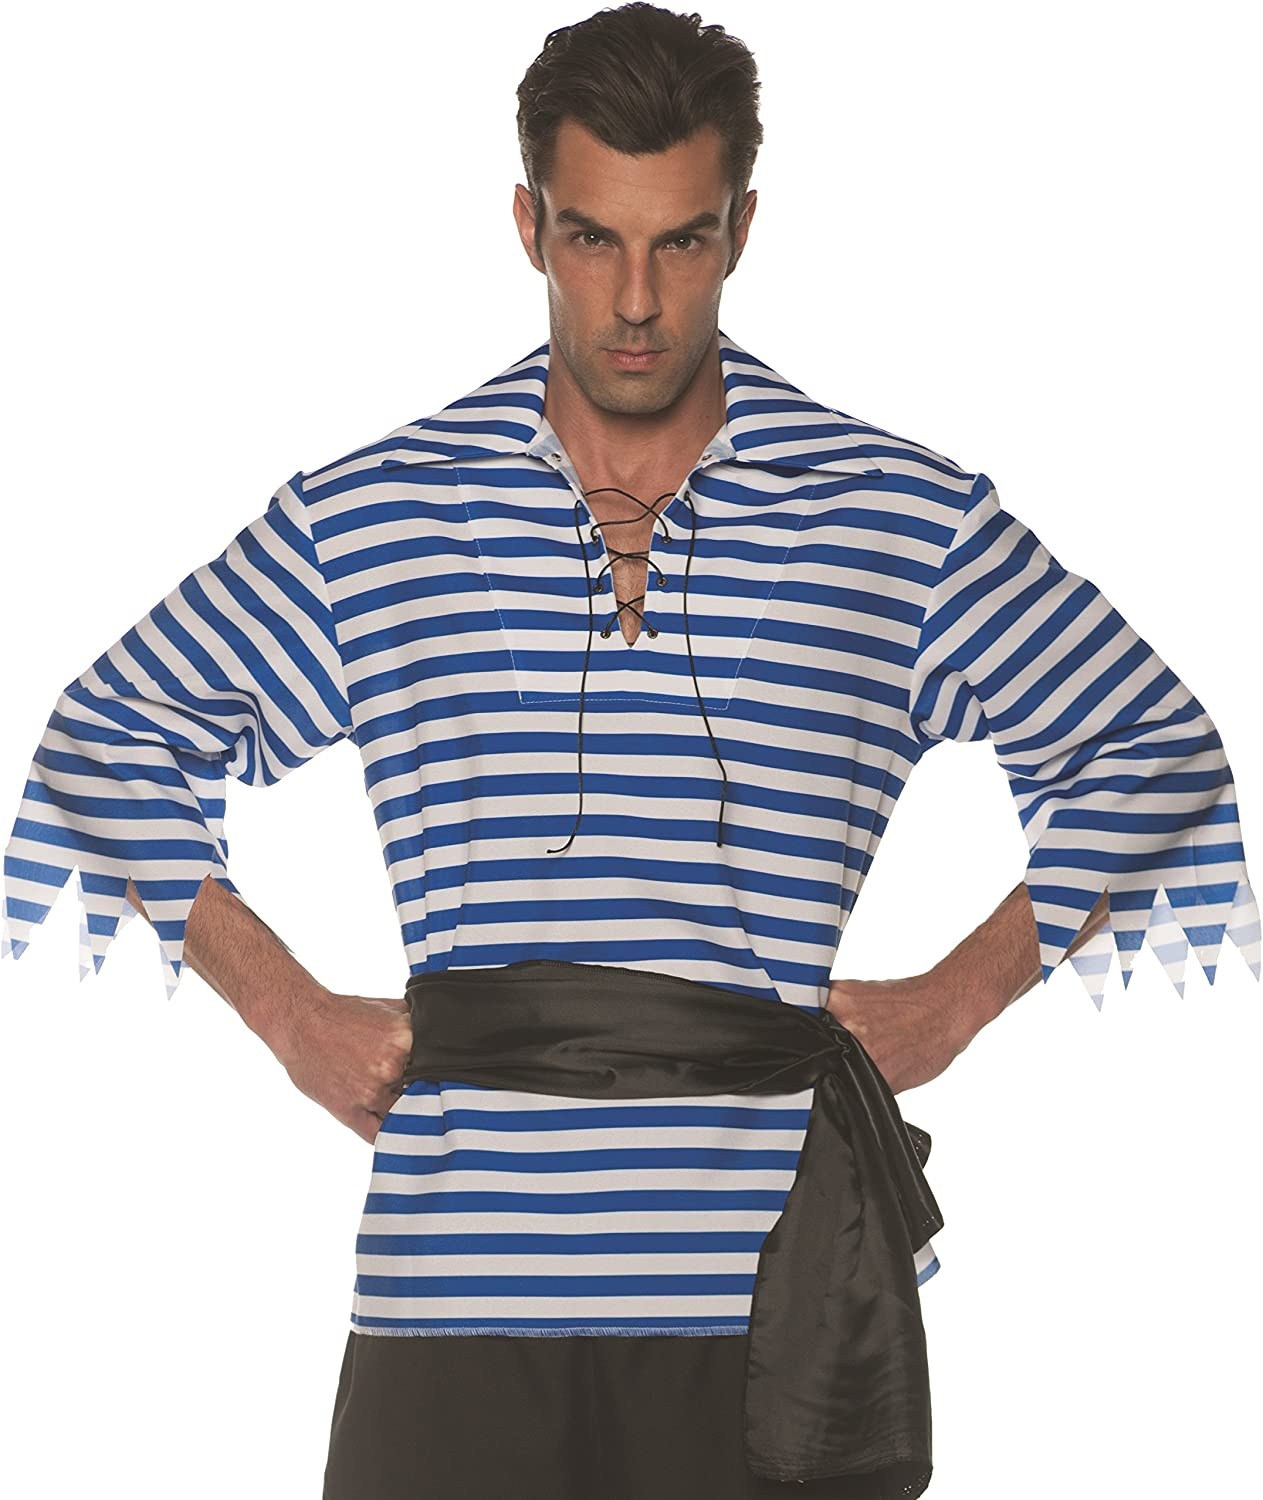 UNDERWRAPS mens Classic Pirate Spasm price Deluxe Striped Whit - Costume Shirt Blue